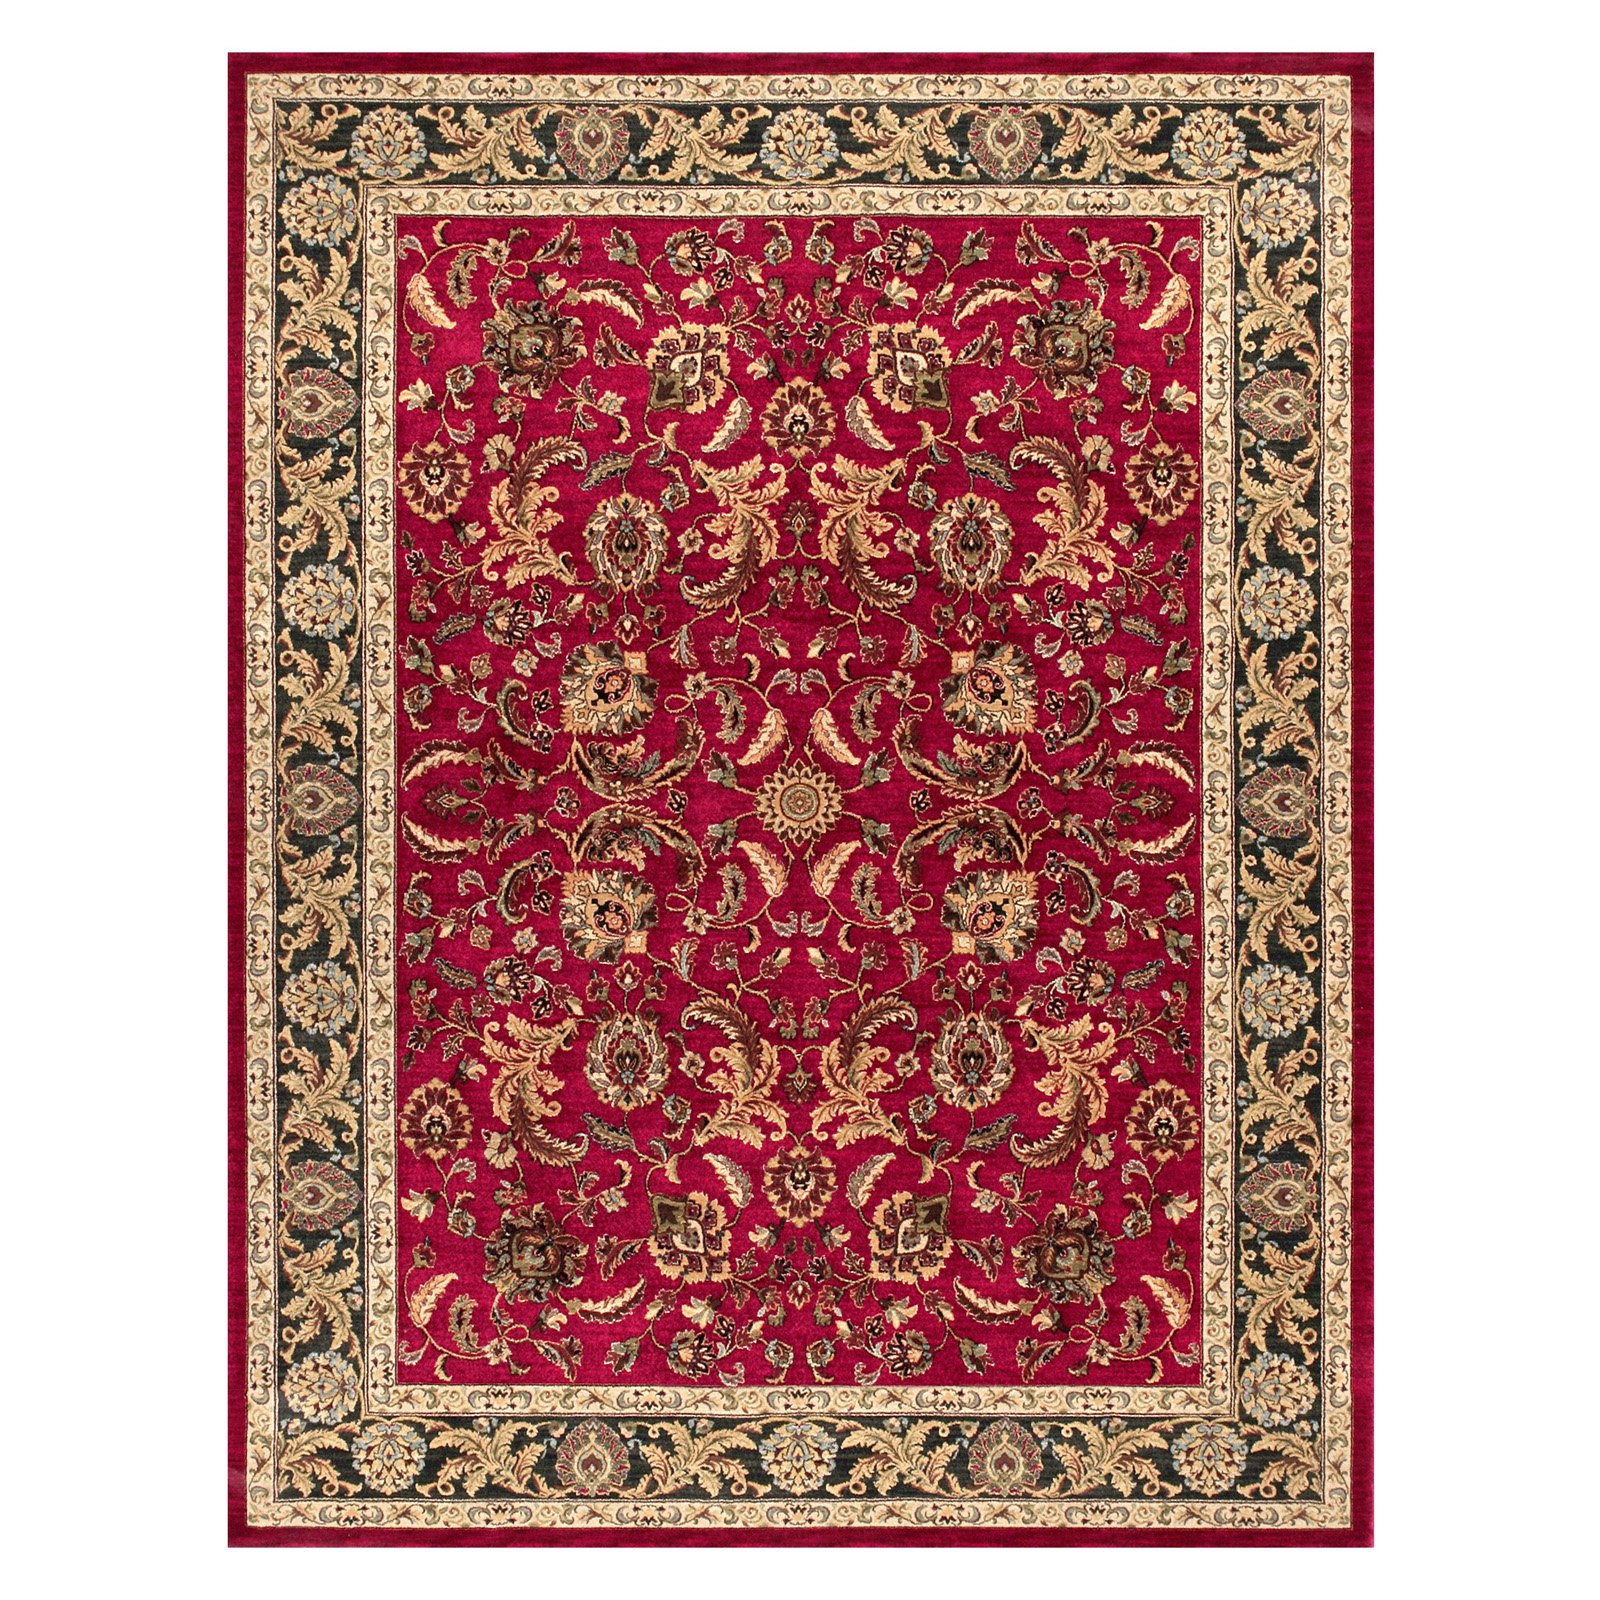 Loloi Stanley ST-01 Area Rug